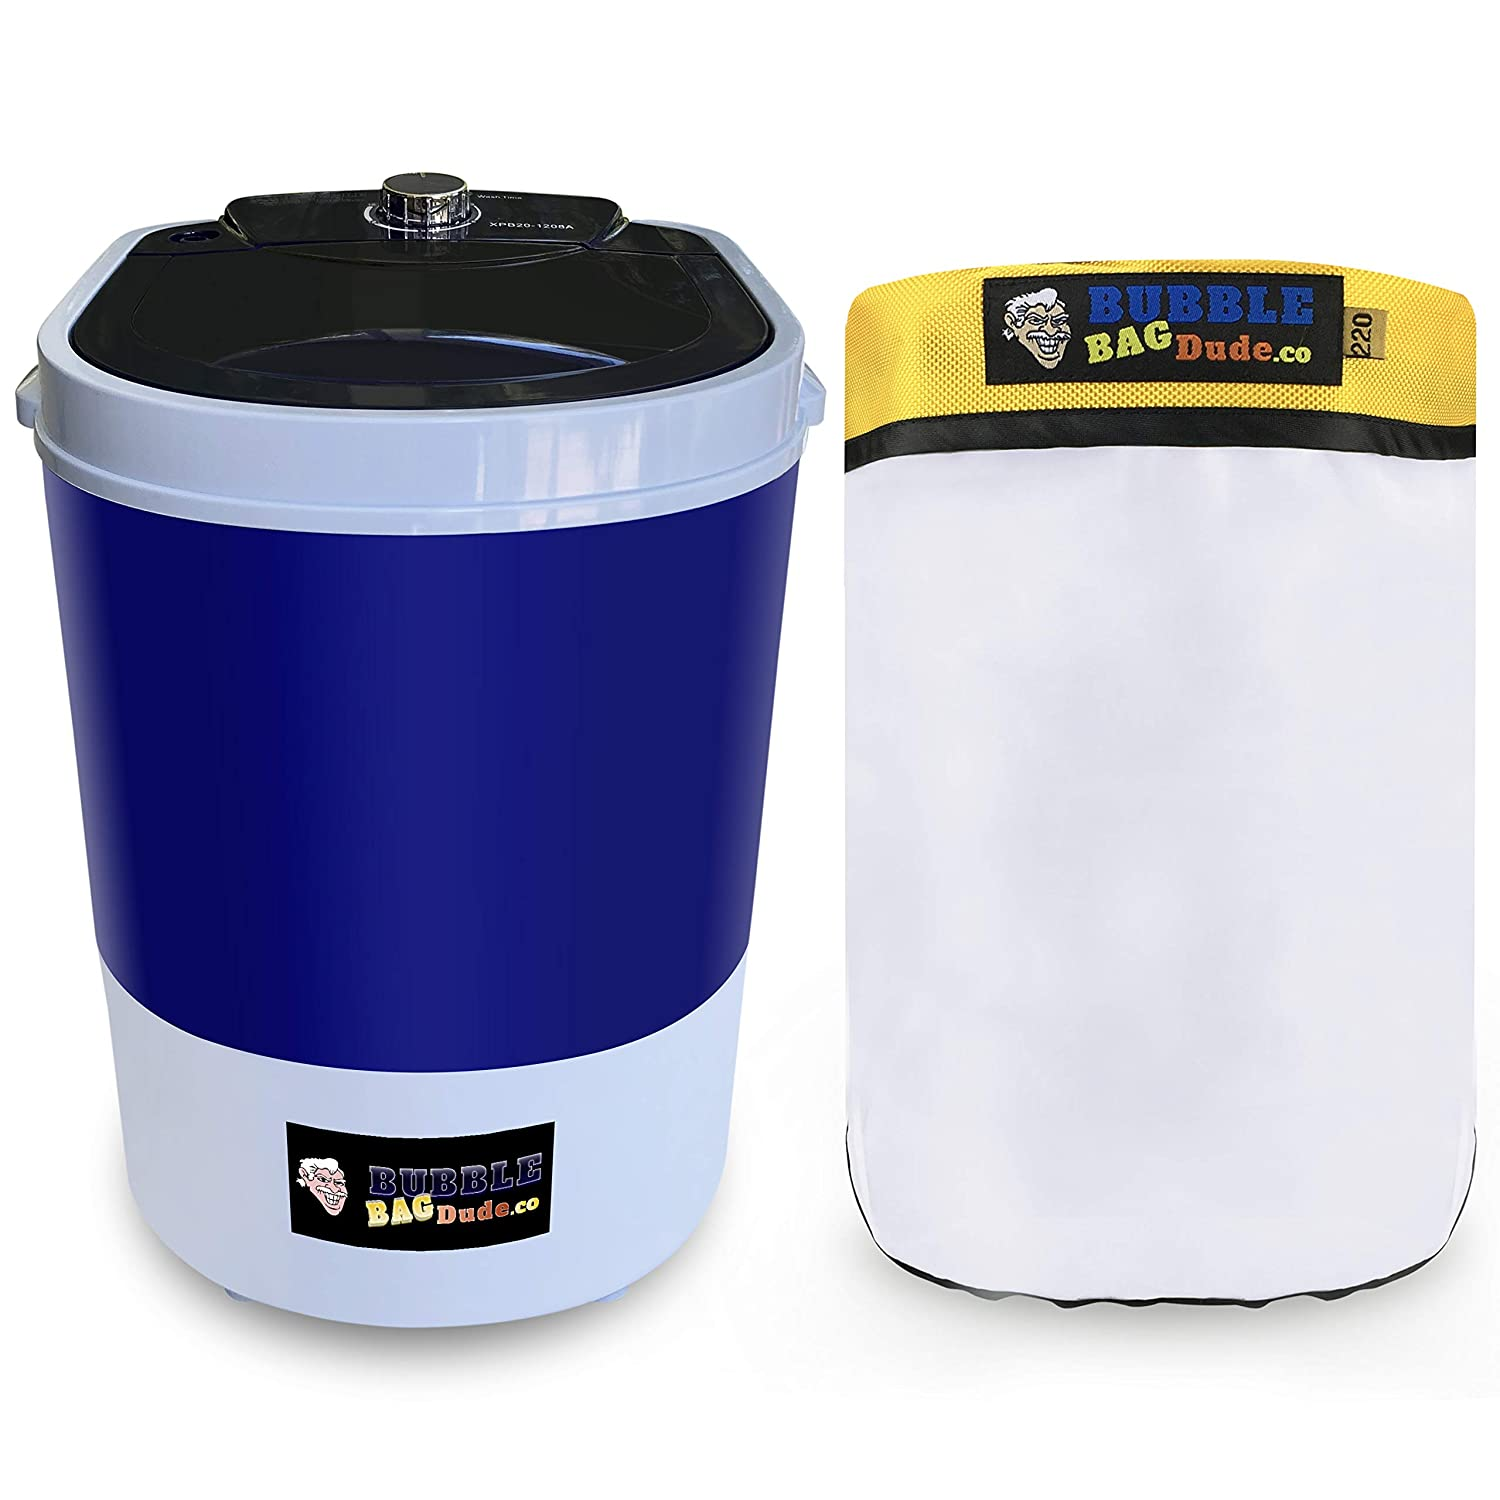 BUBBLEBAGDUDE Bubble Bags Machine 5 Gallon Small Mini Compact Washer Extracting Mini Washing Machine with 220 micron Zipper Bag Herbal Extractor